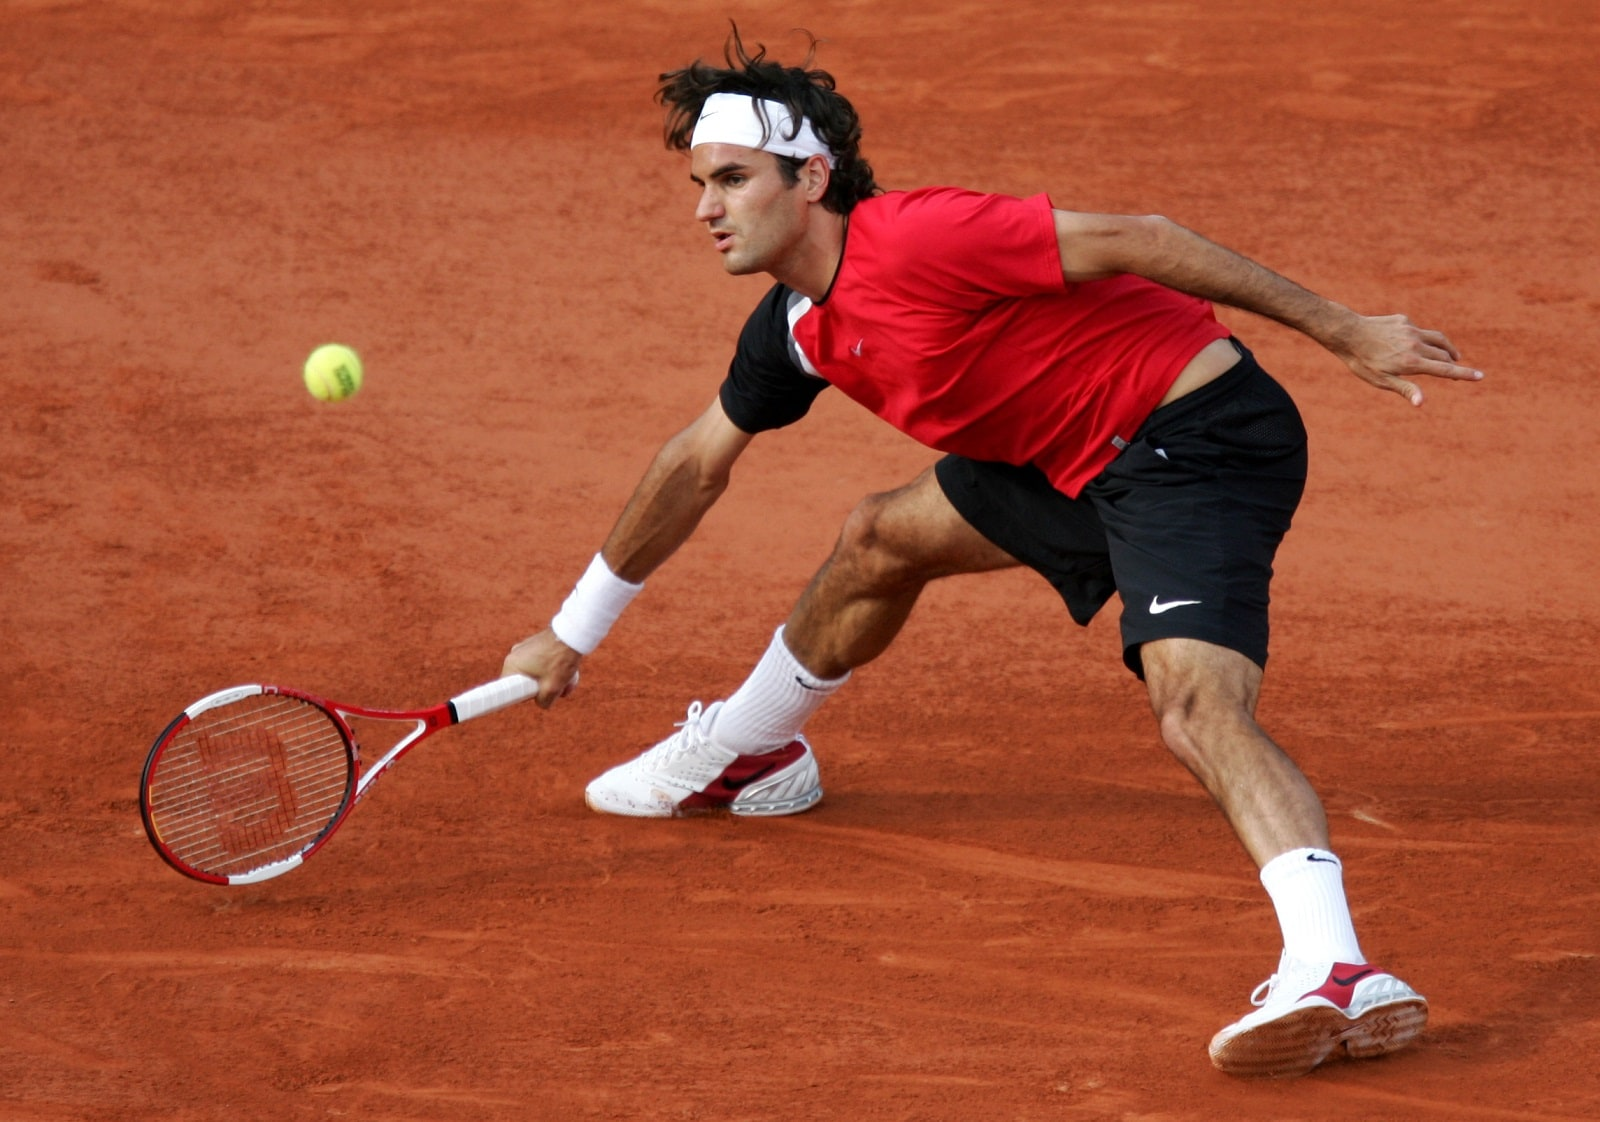 #5: Lawn tennis star Roger Federer of Switzerland earned $93.4 million in the last year, with a major chunk of his earnings i.e $ 86 million coming from endorsements. He earned a salary of $7.4 million in the last 12 months, Forbes said. (Image: Reuters)